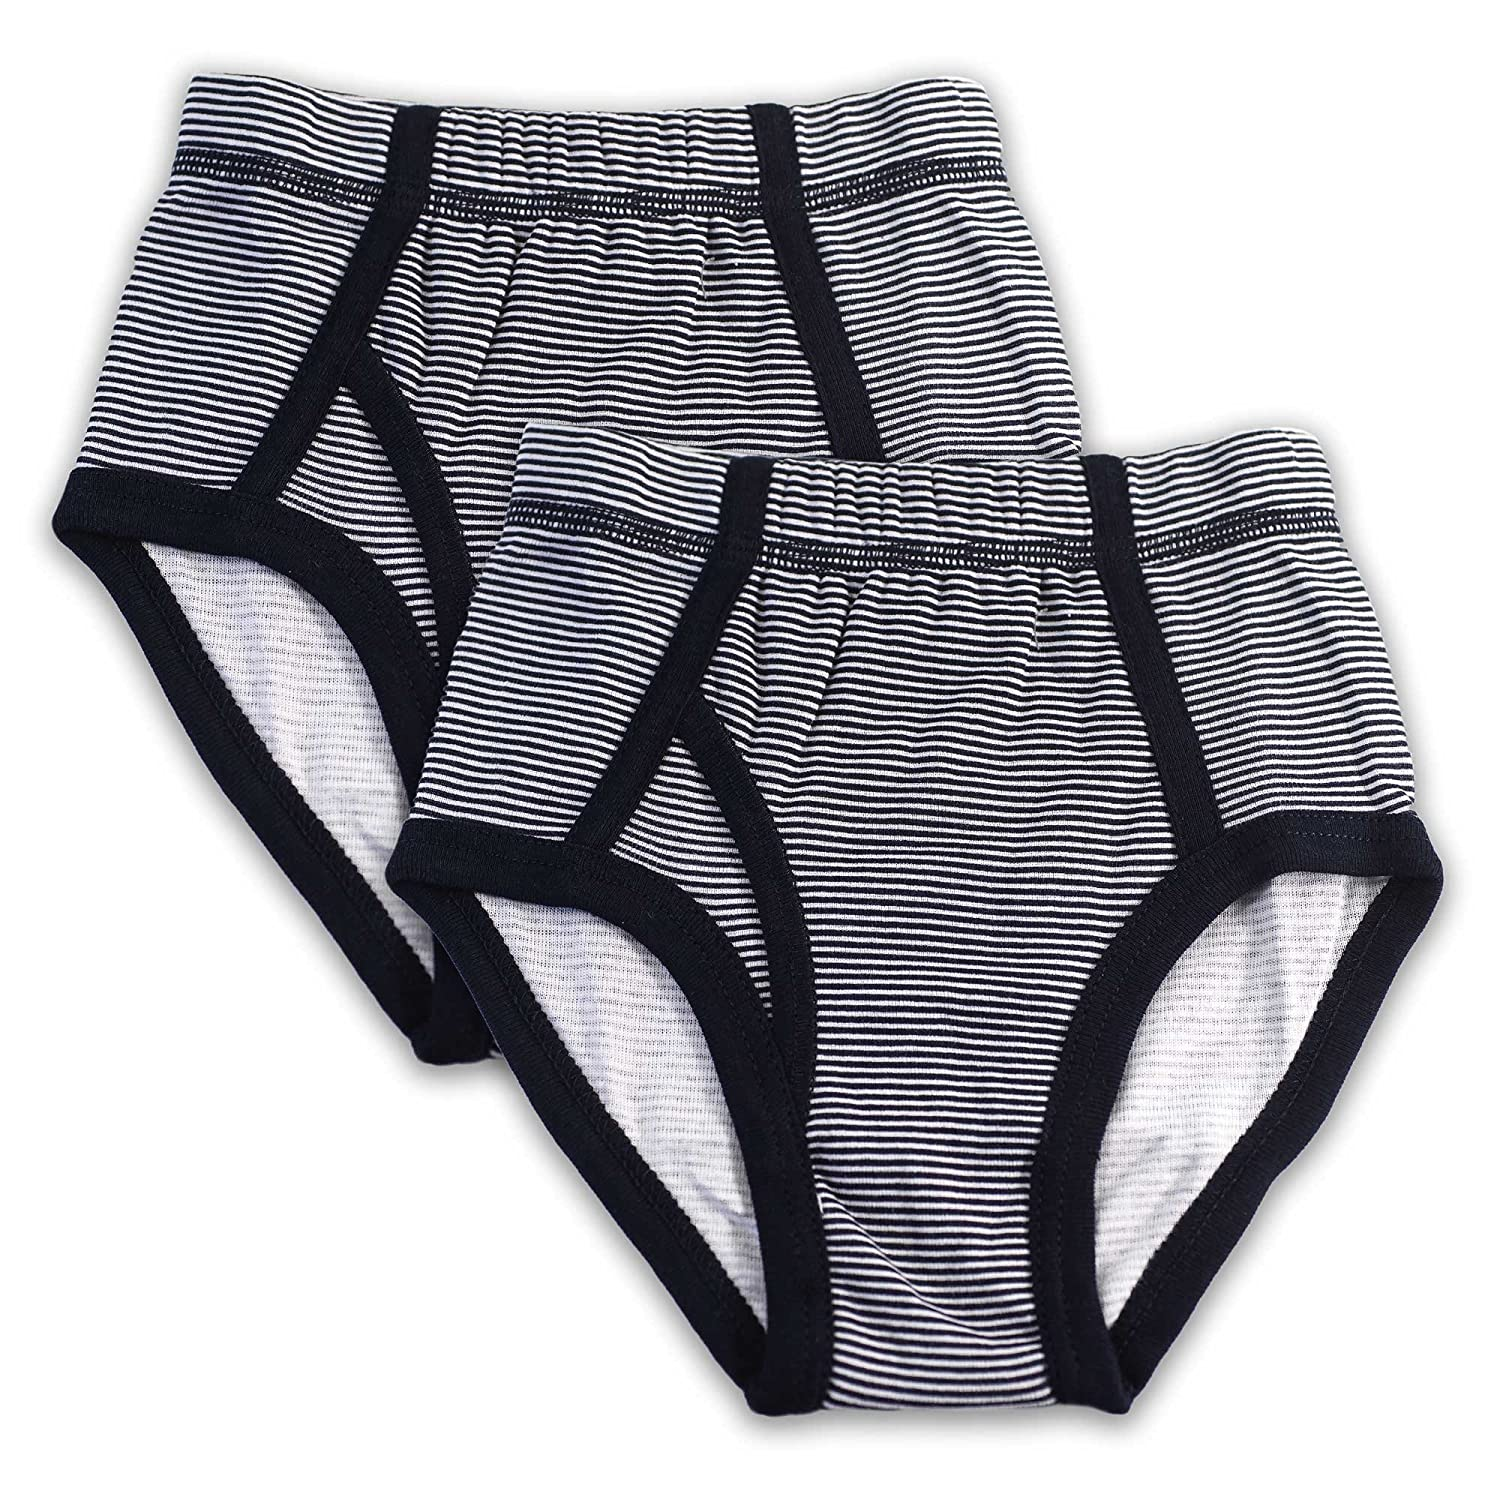 Full Cut Underwear Briefs 2 Pack Key Chain Cotton Panties for Boys